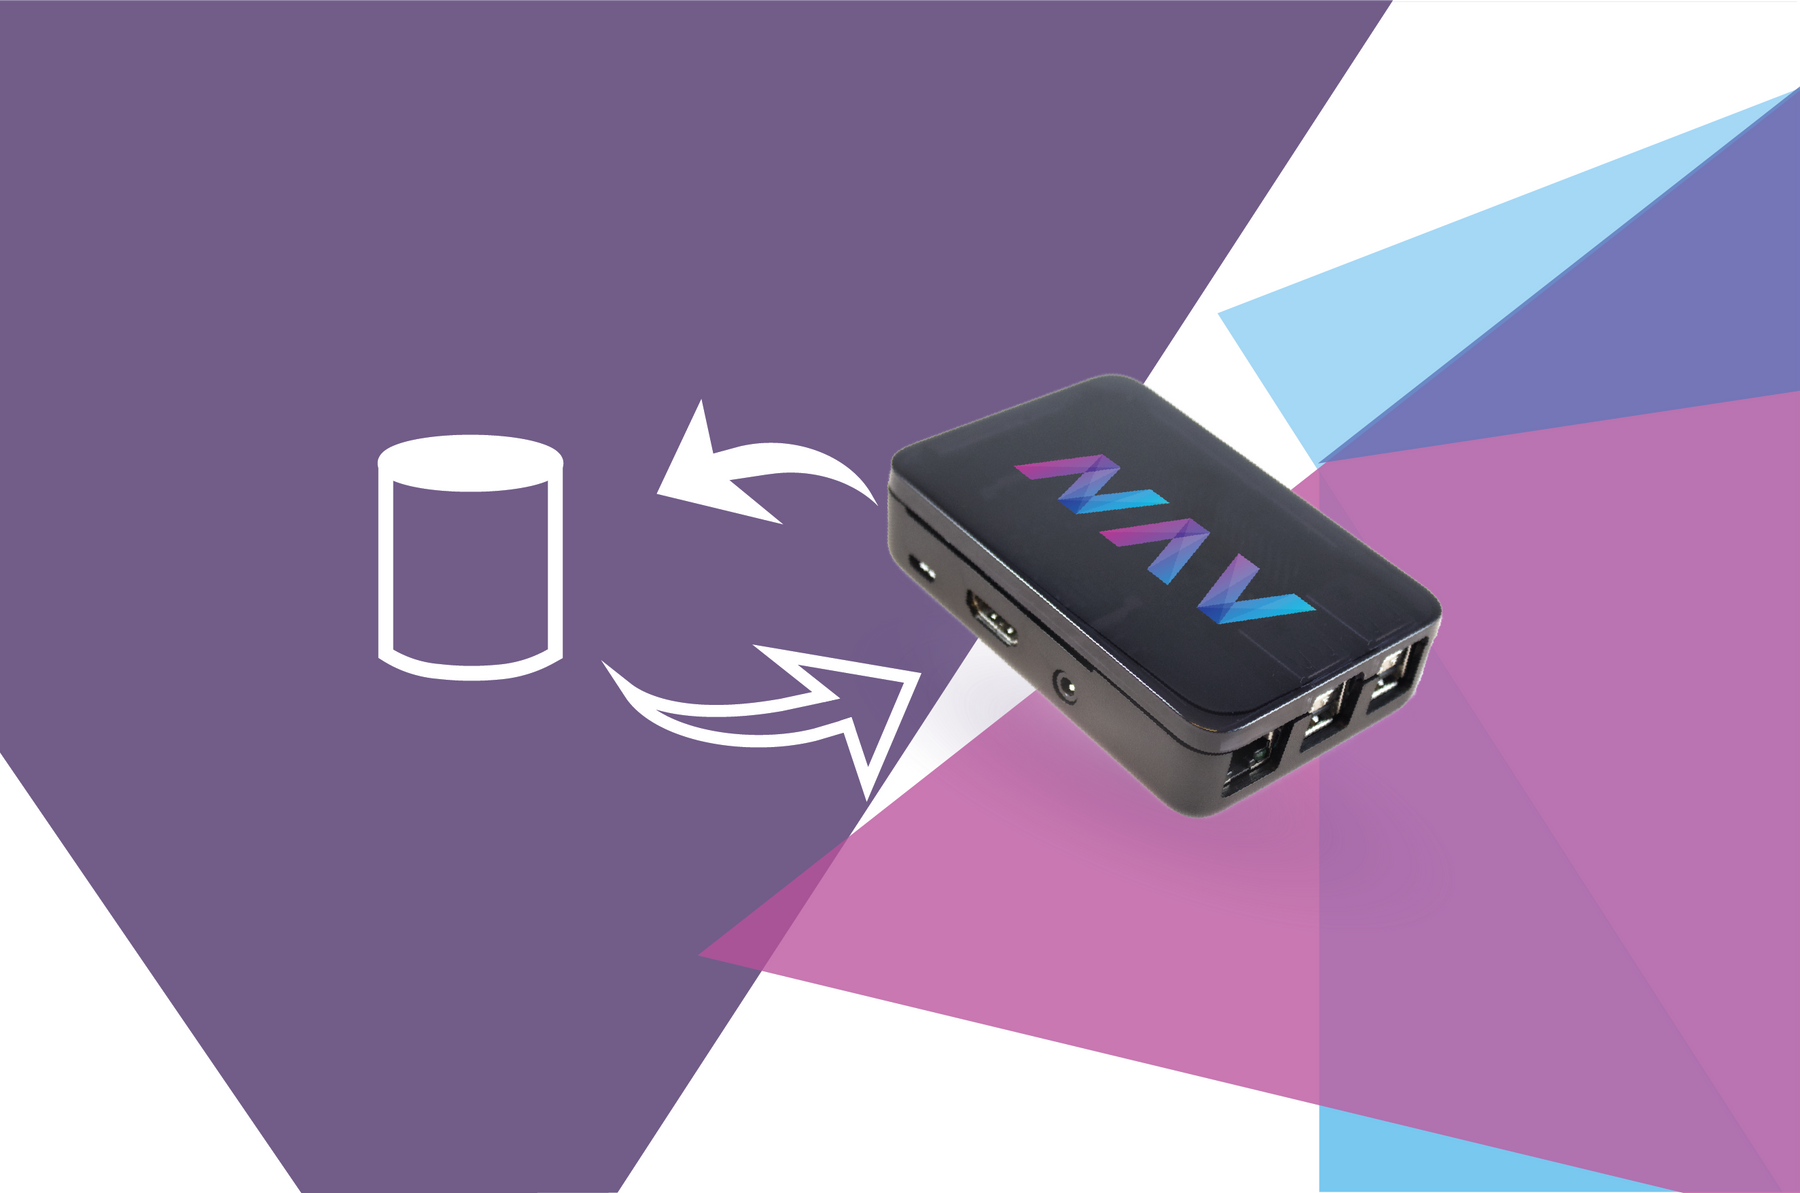 NavPi StakeBox - Earn interest on the Proof of StakeBox cryptocurrency, Navcoin